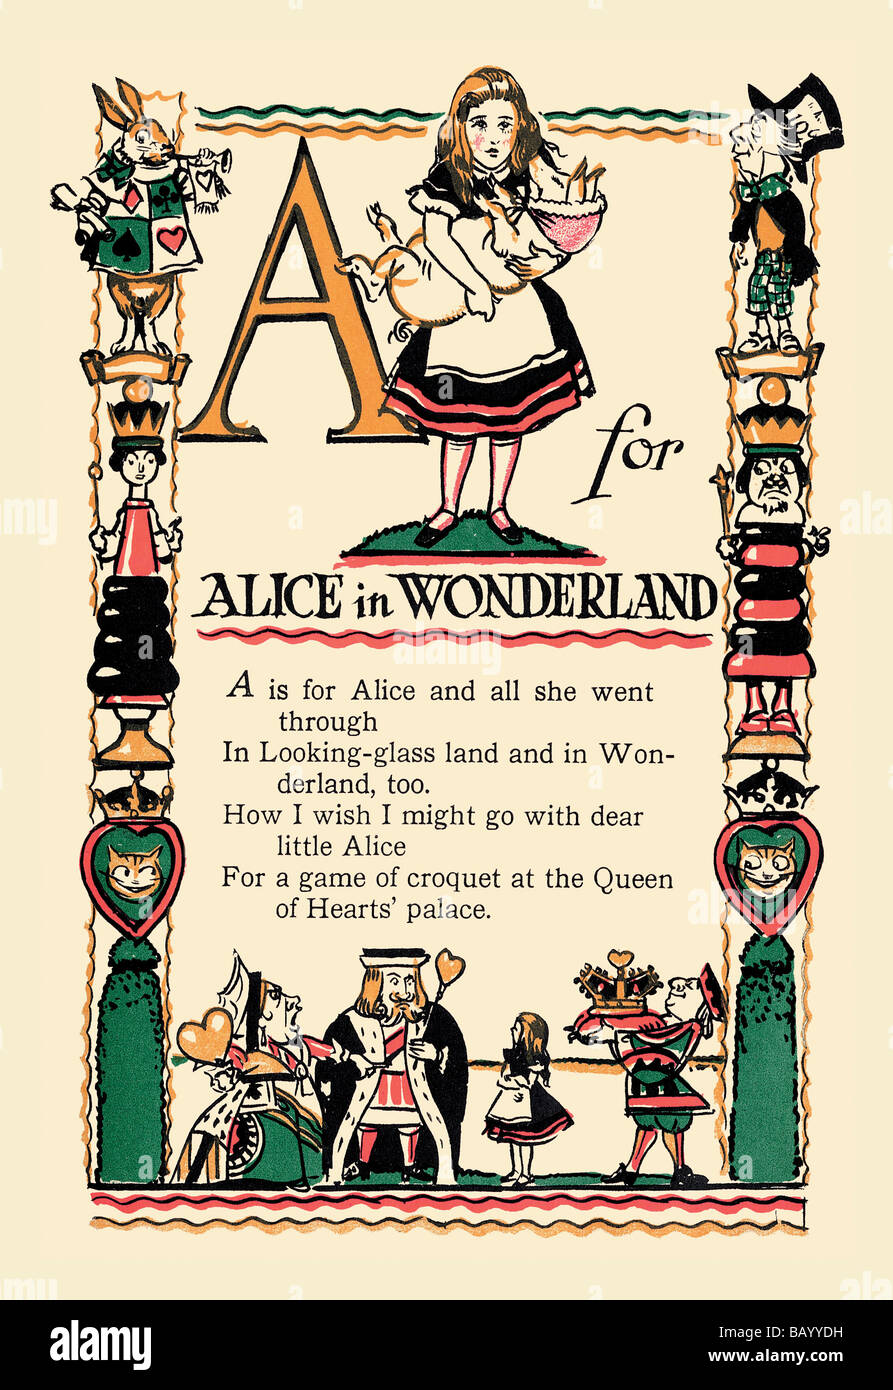 A for Alice in Wonderland - Stock Image